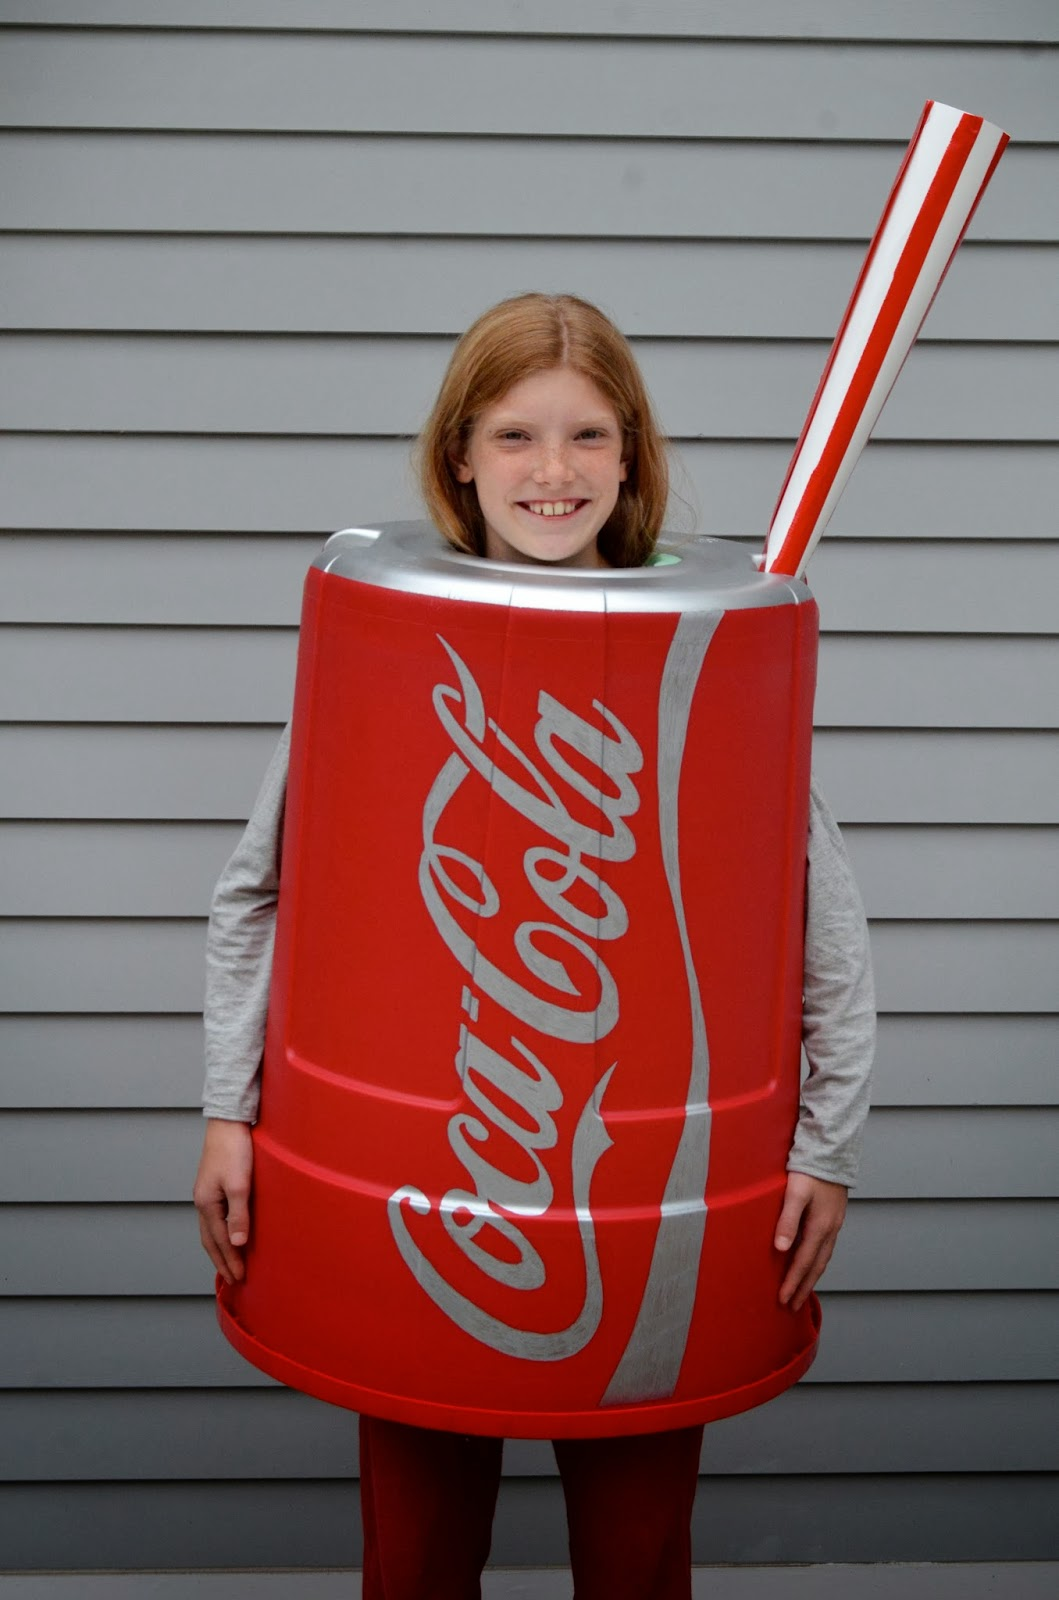 the princess and the frog blog halloween 2013 a coke can the